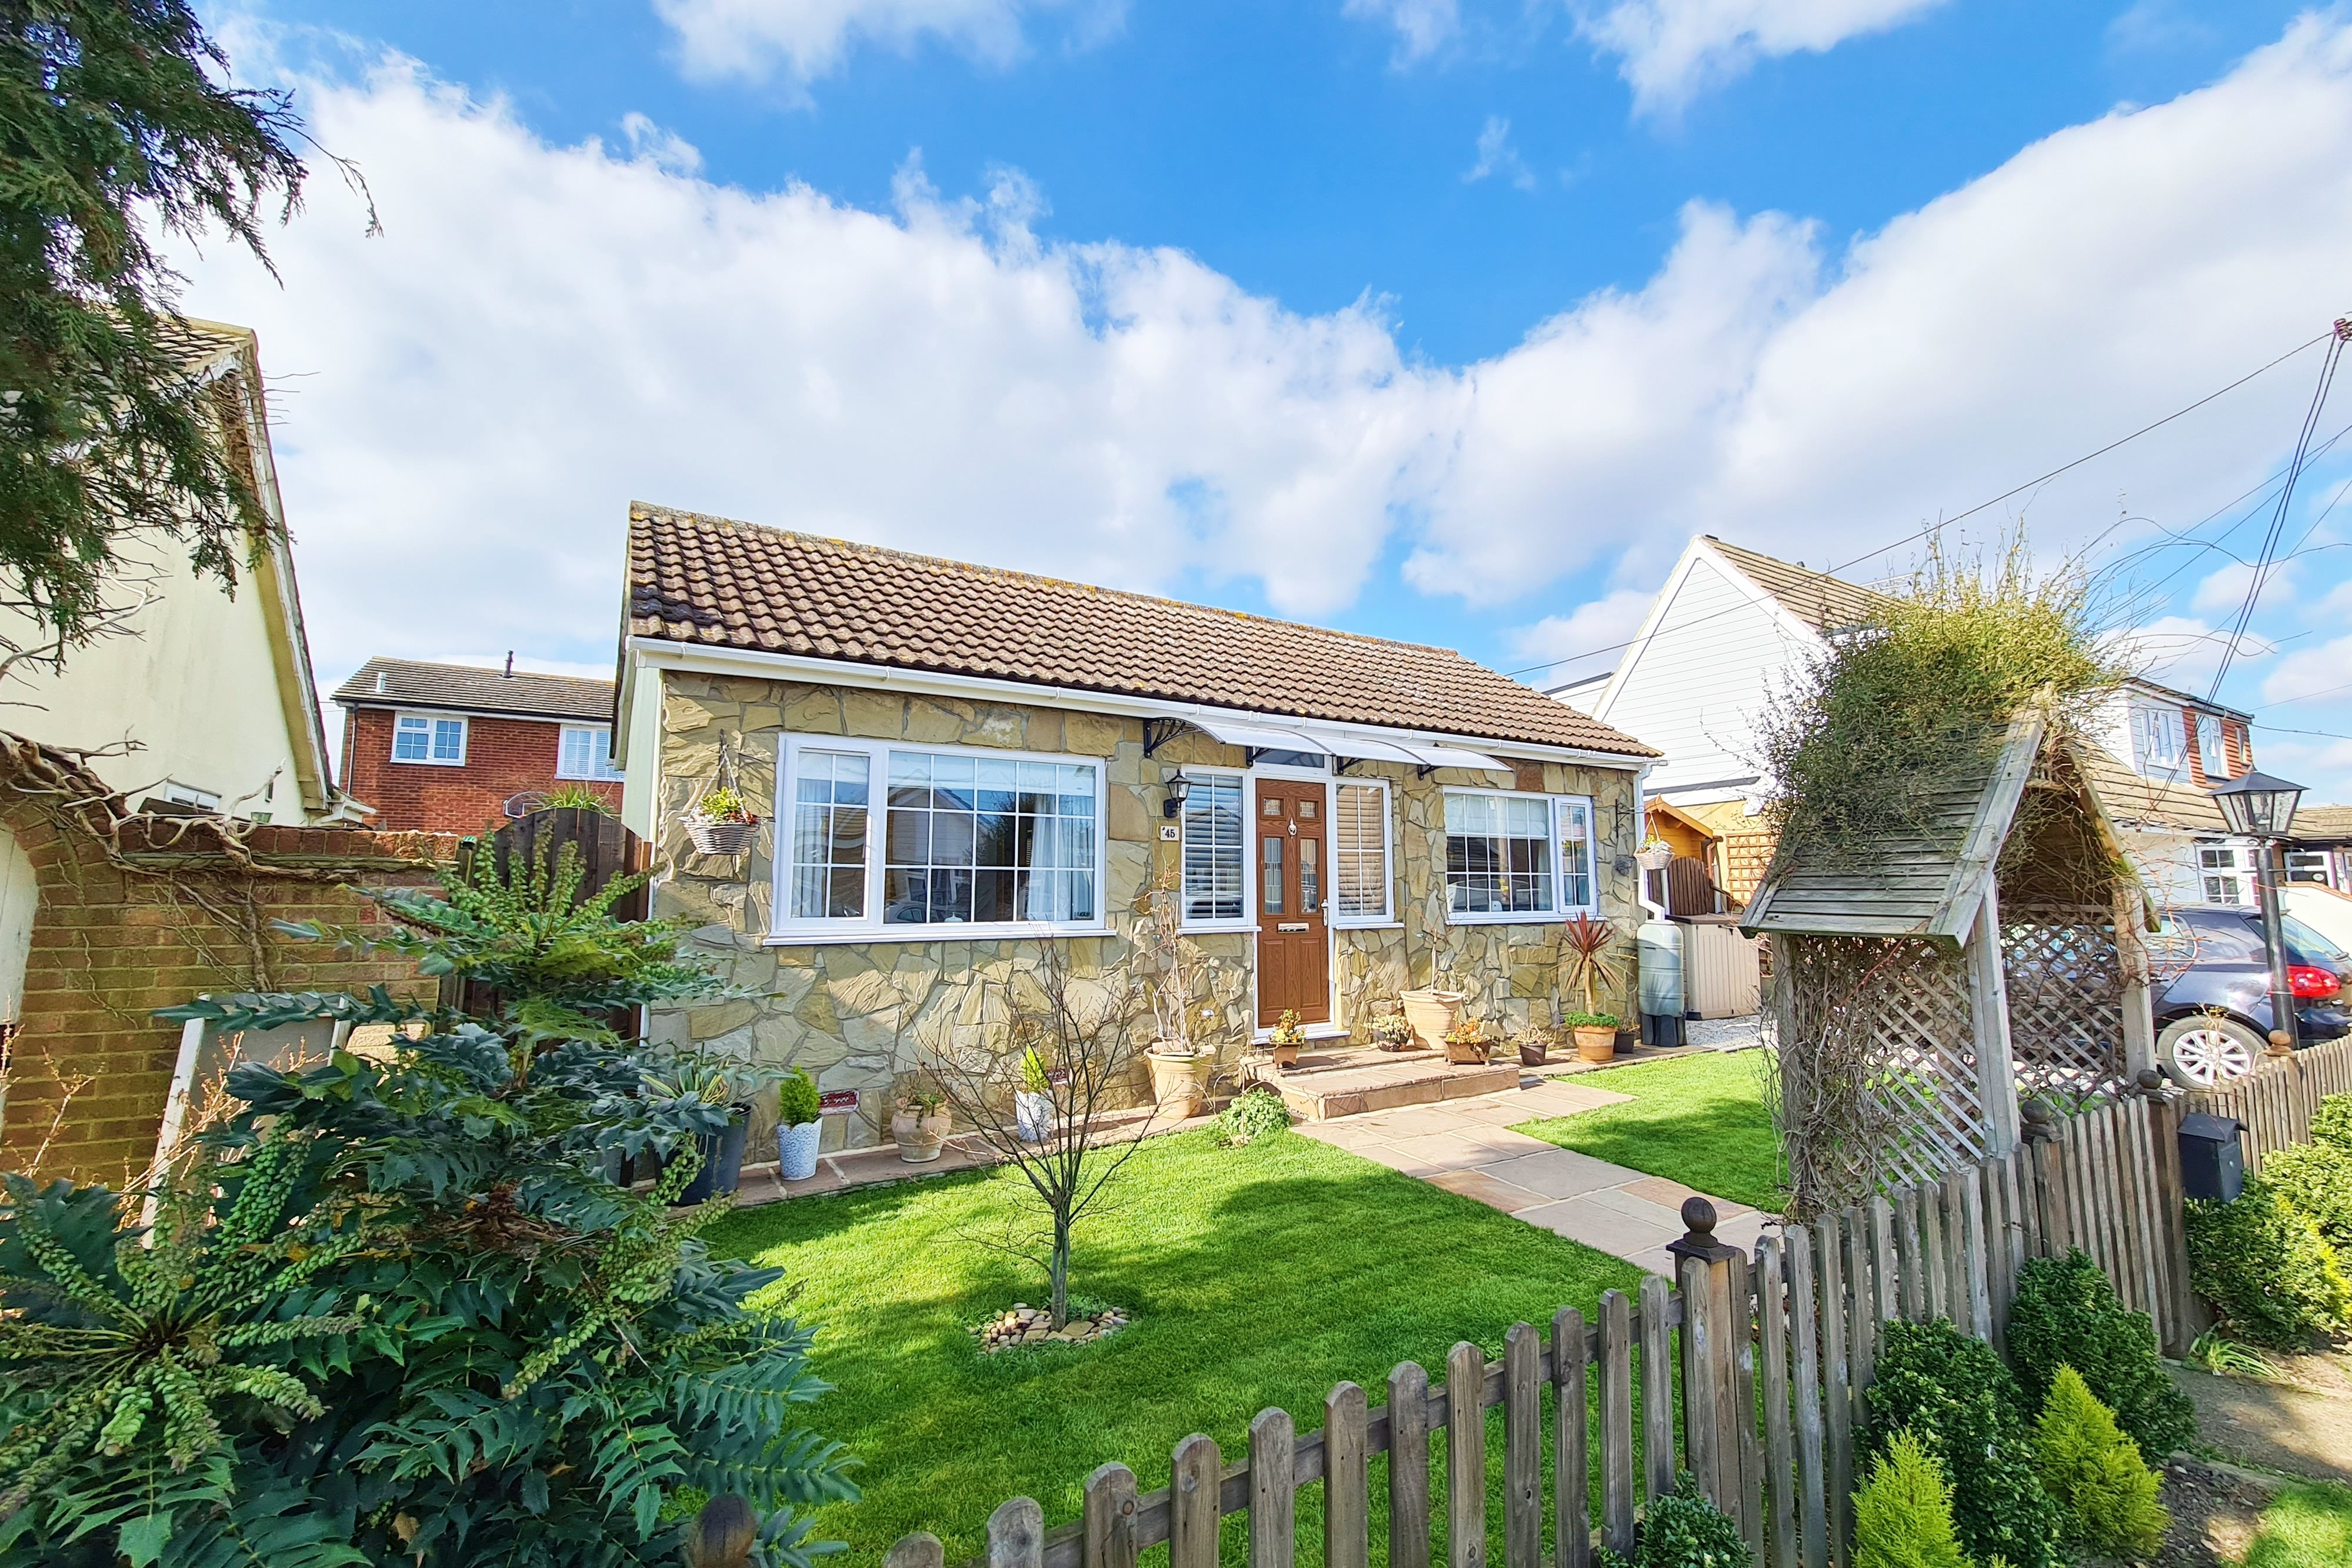 2 bed bungalow for sale in Canvey Island, Essex 0